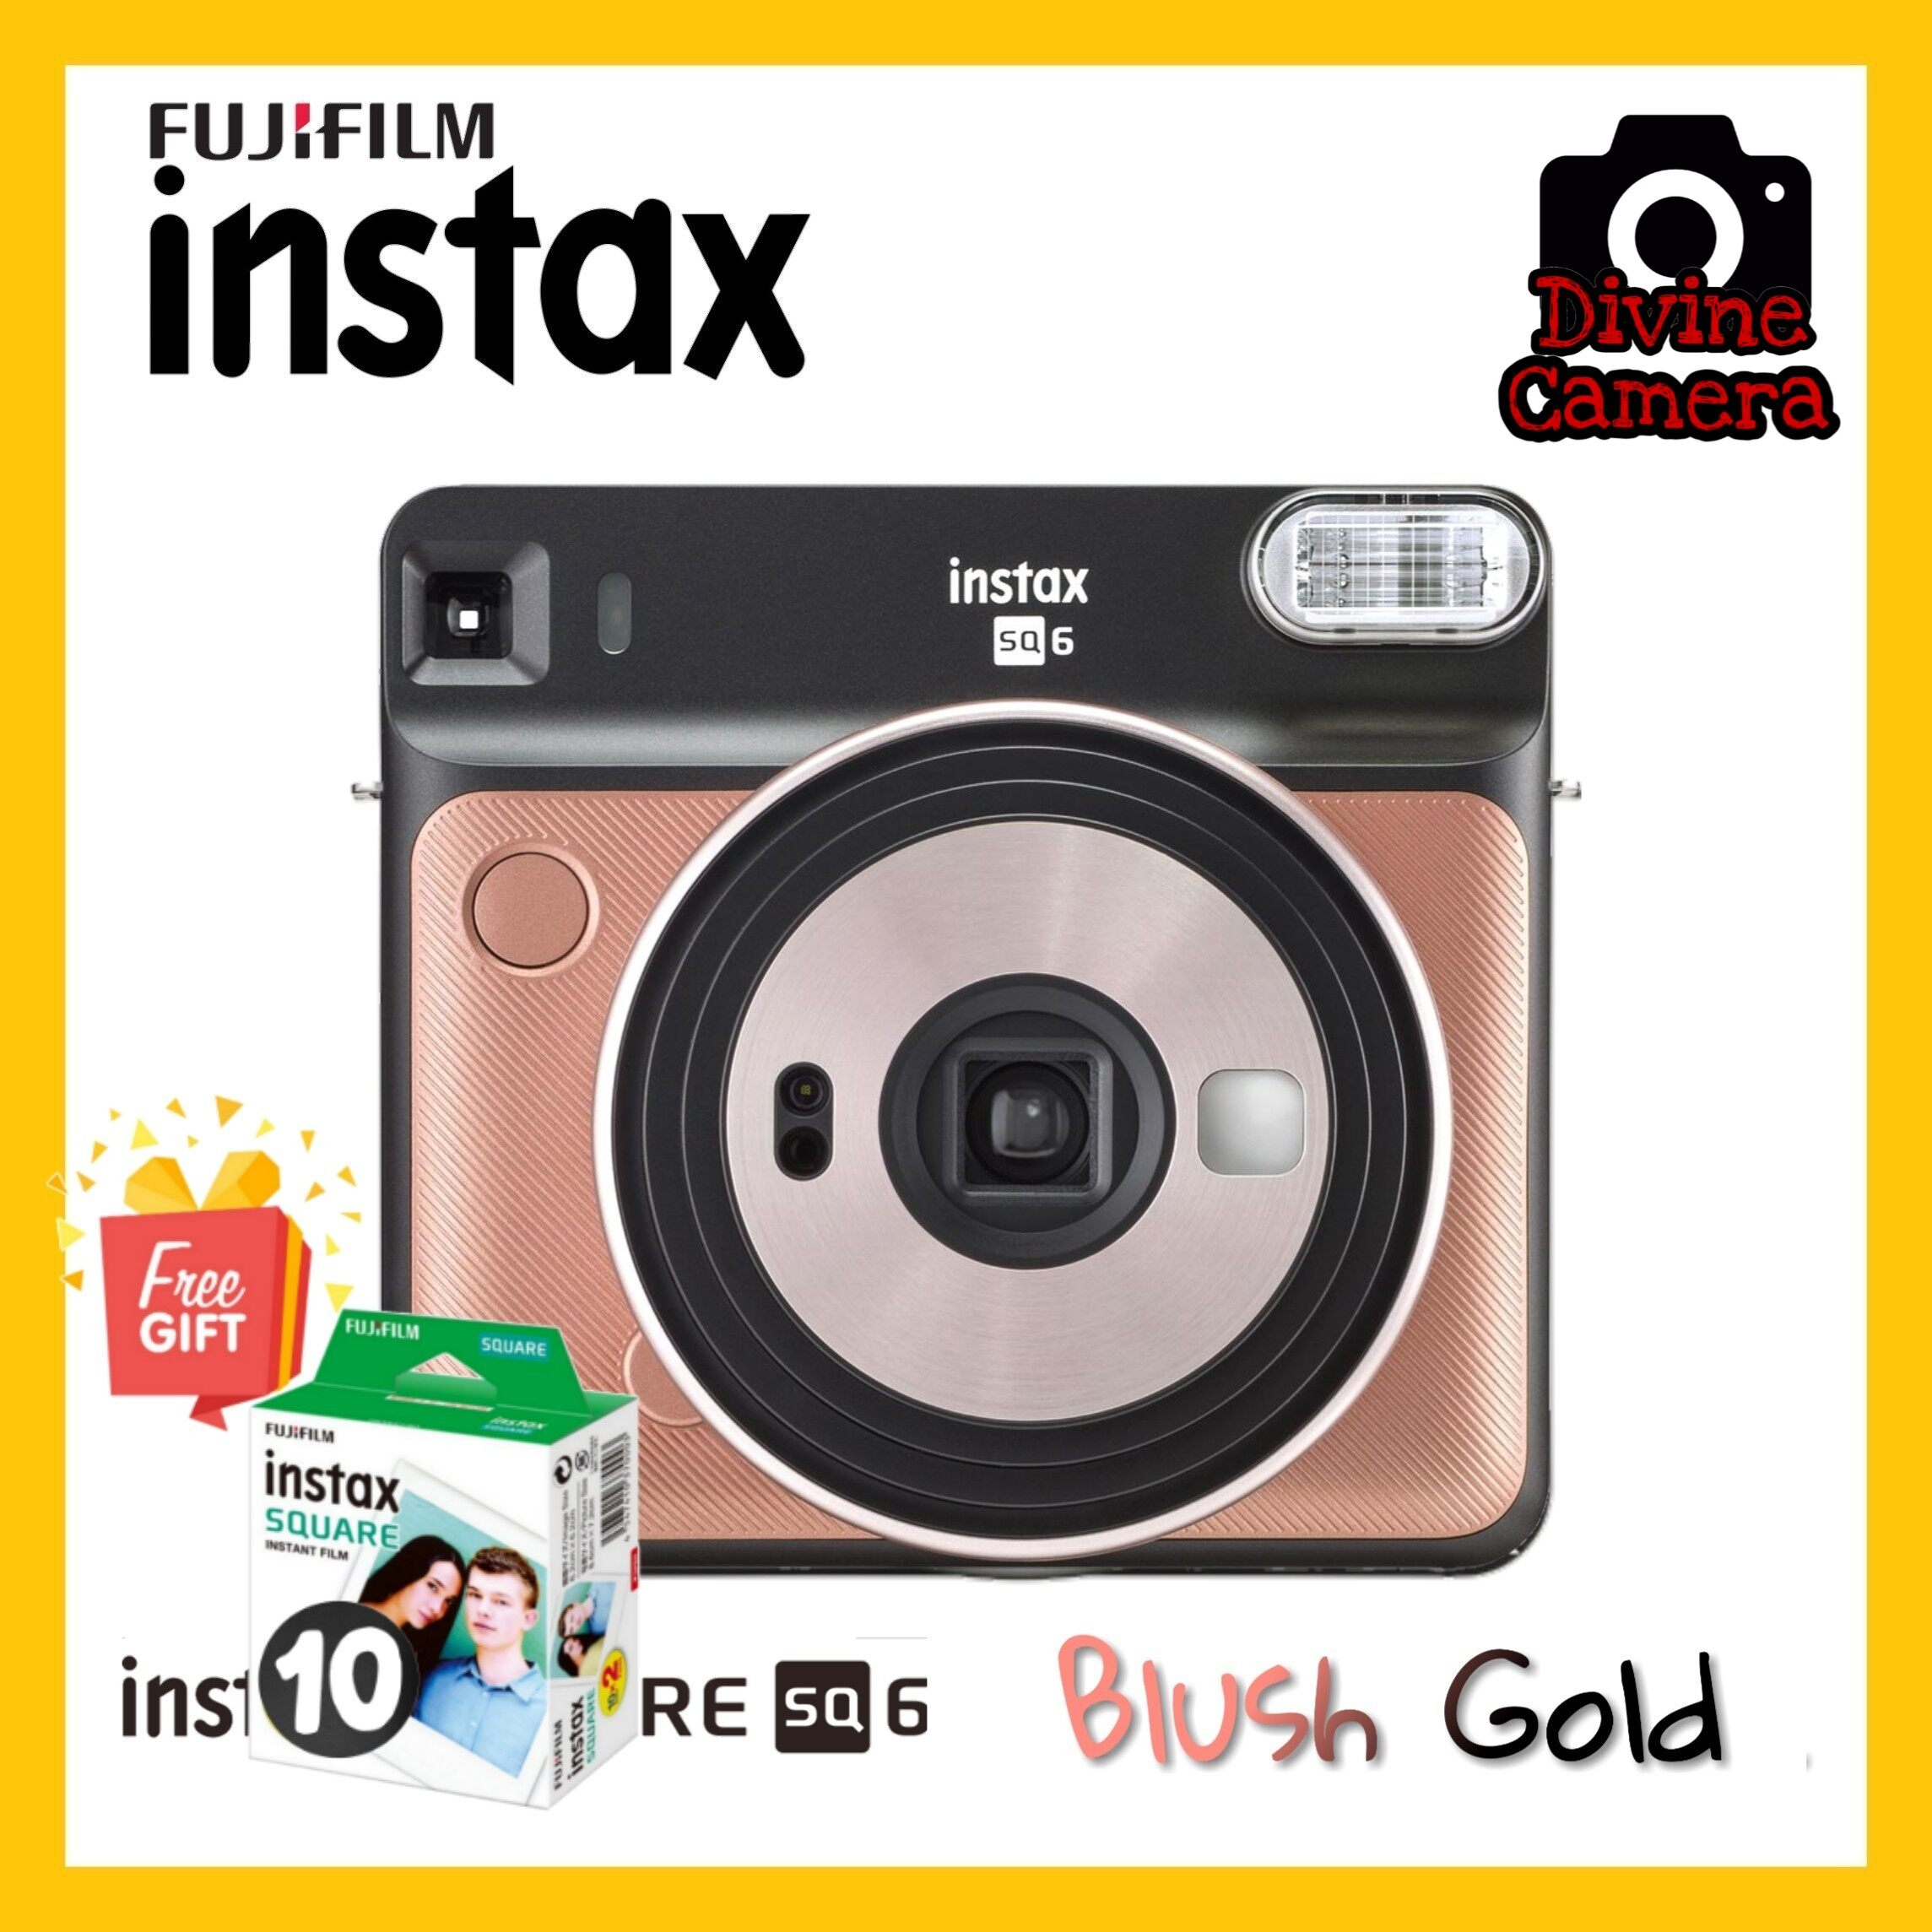 FUJIFILM INSTAX SQUARE SQ6 Instant Film Camera Special Package